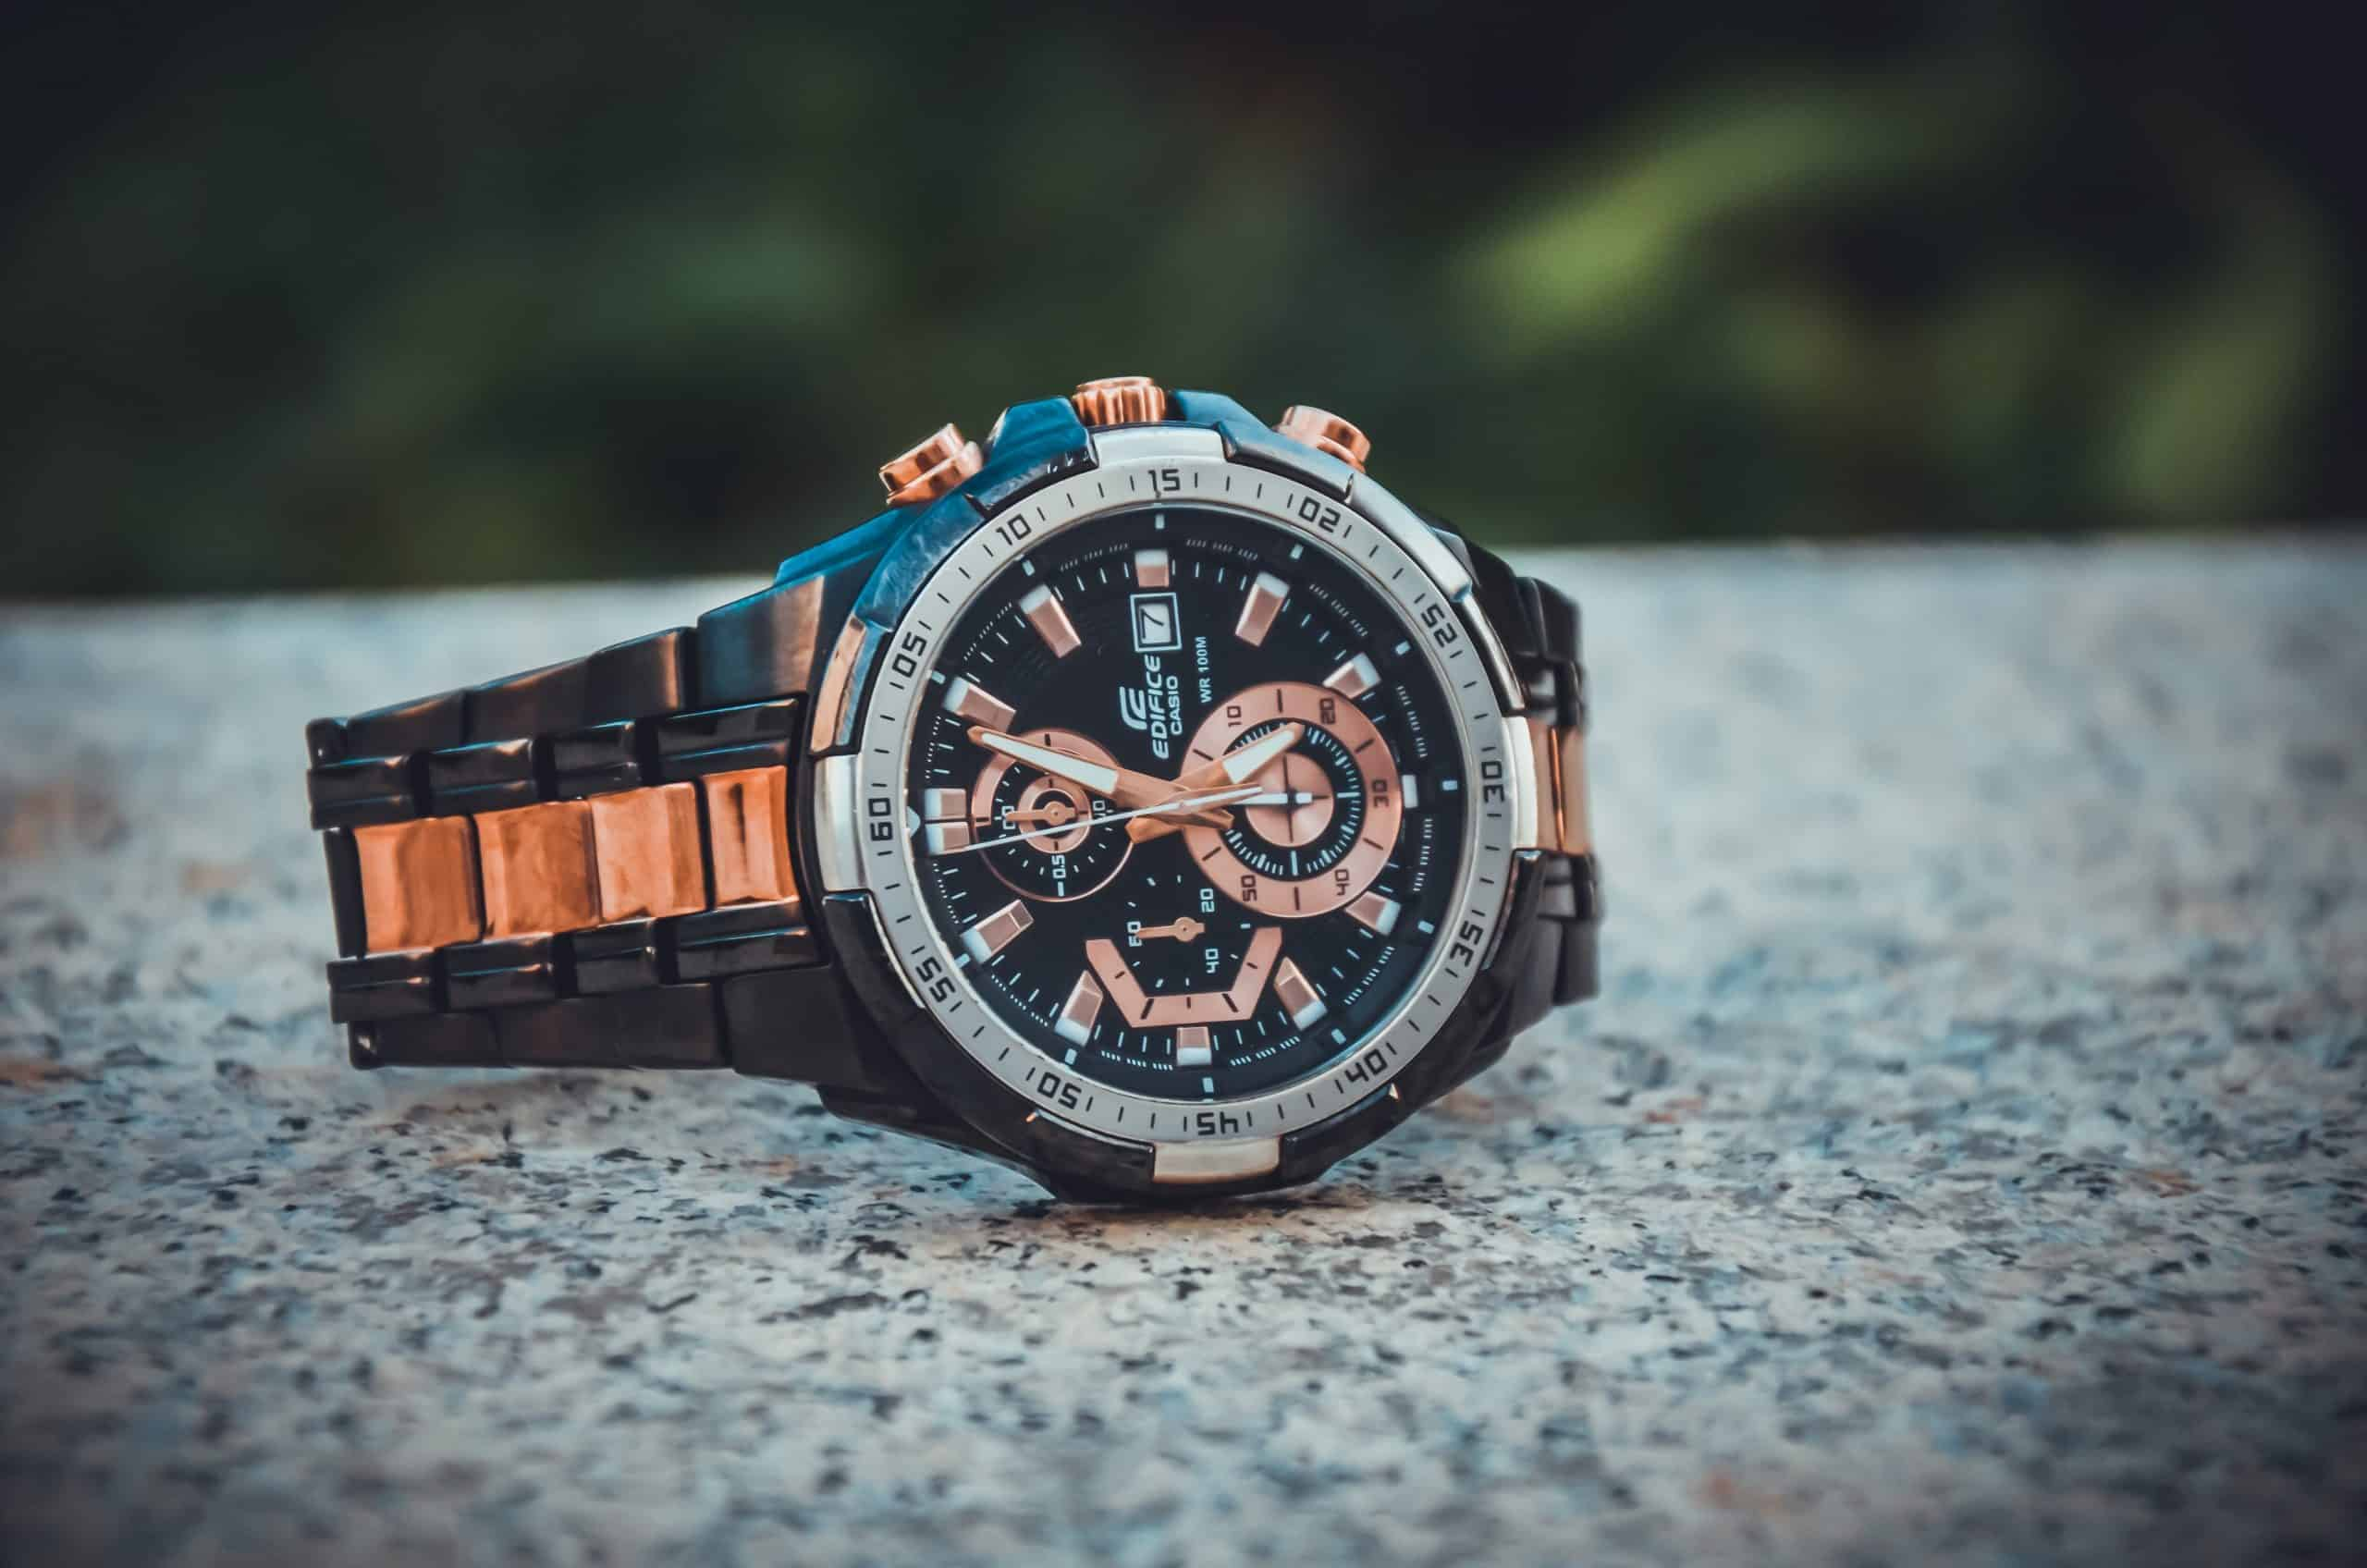 The Right Beautiful Watch For You